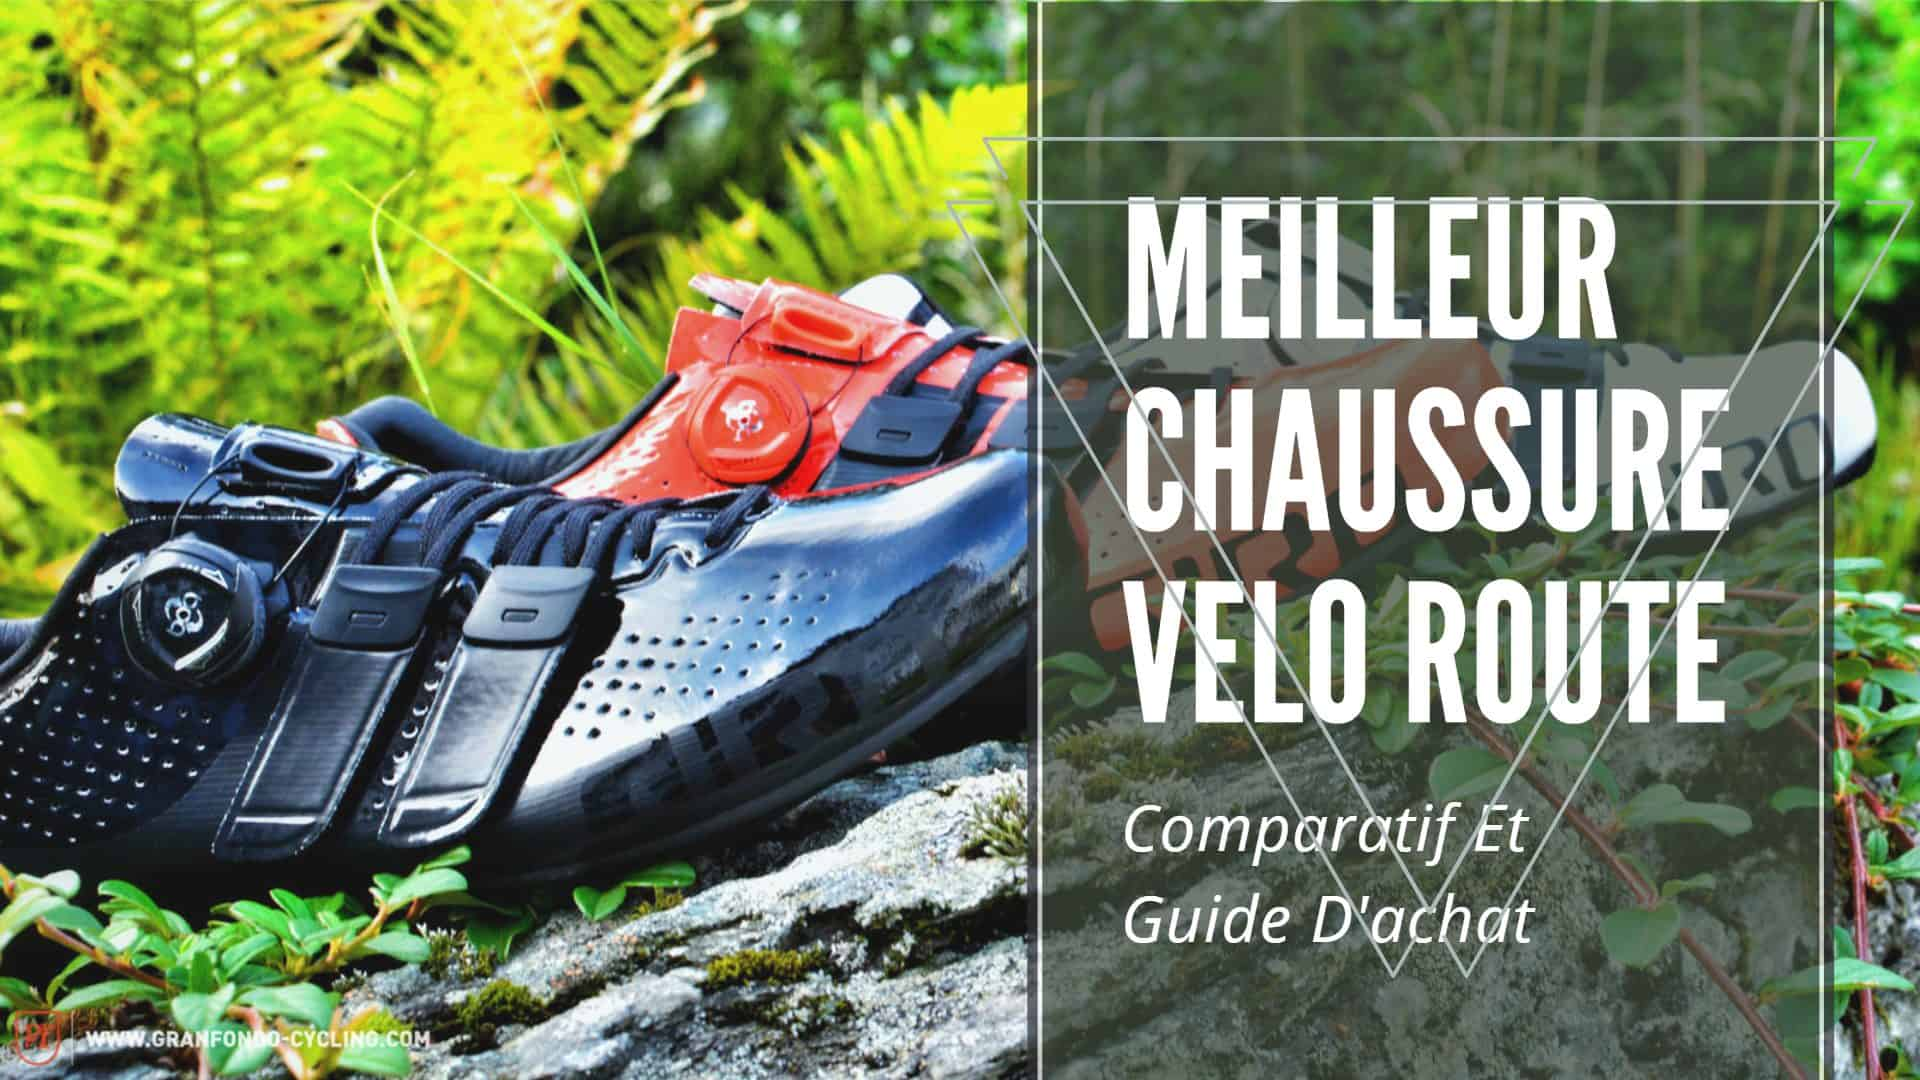 meilleur chaussure velo route